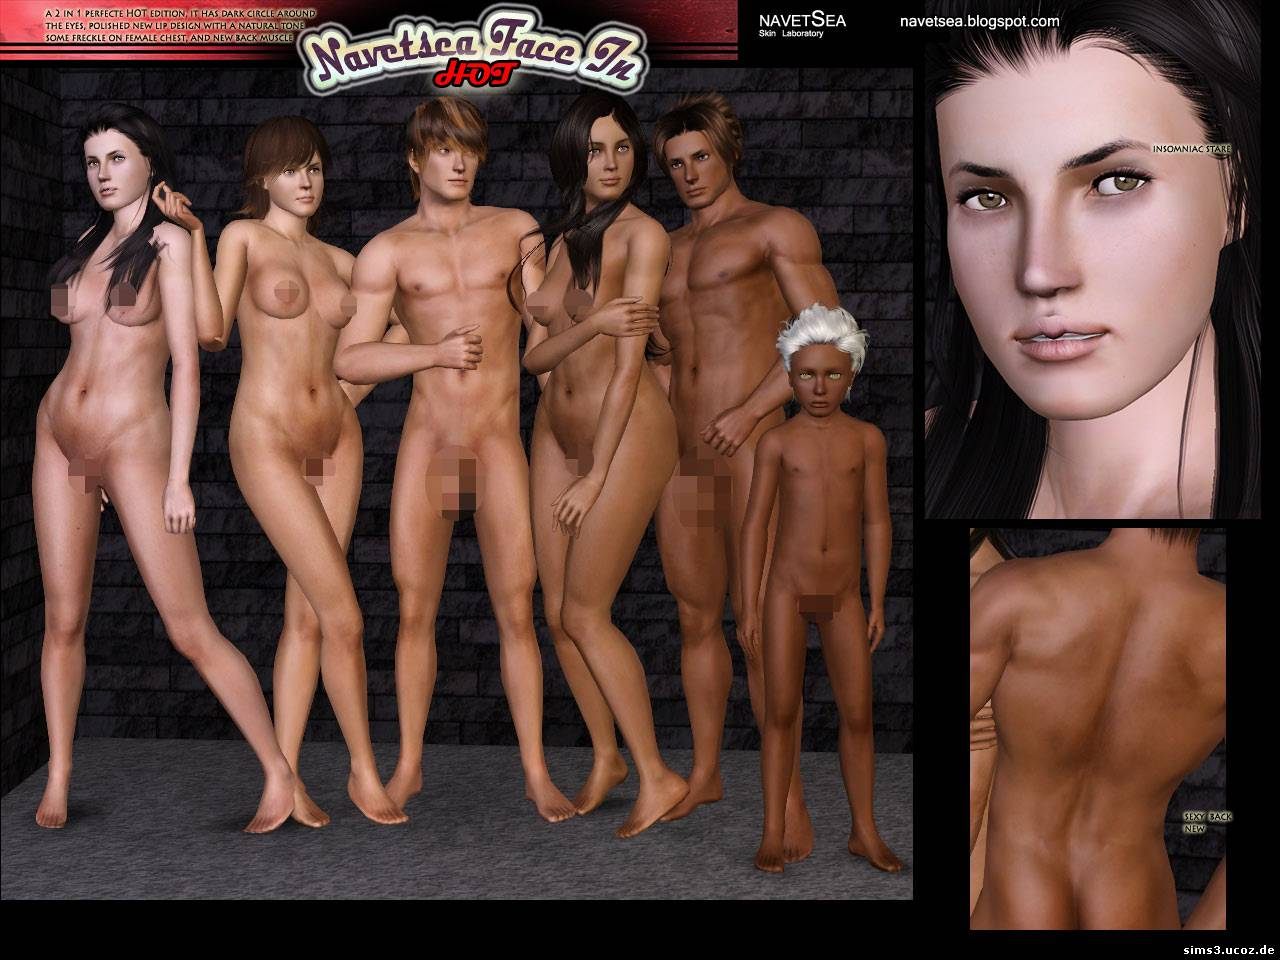 The Sims 2 Nudist Hack 21 Porn Pics Movies